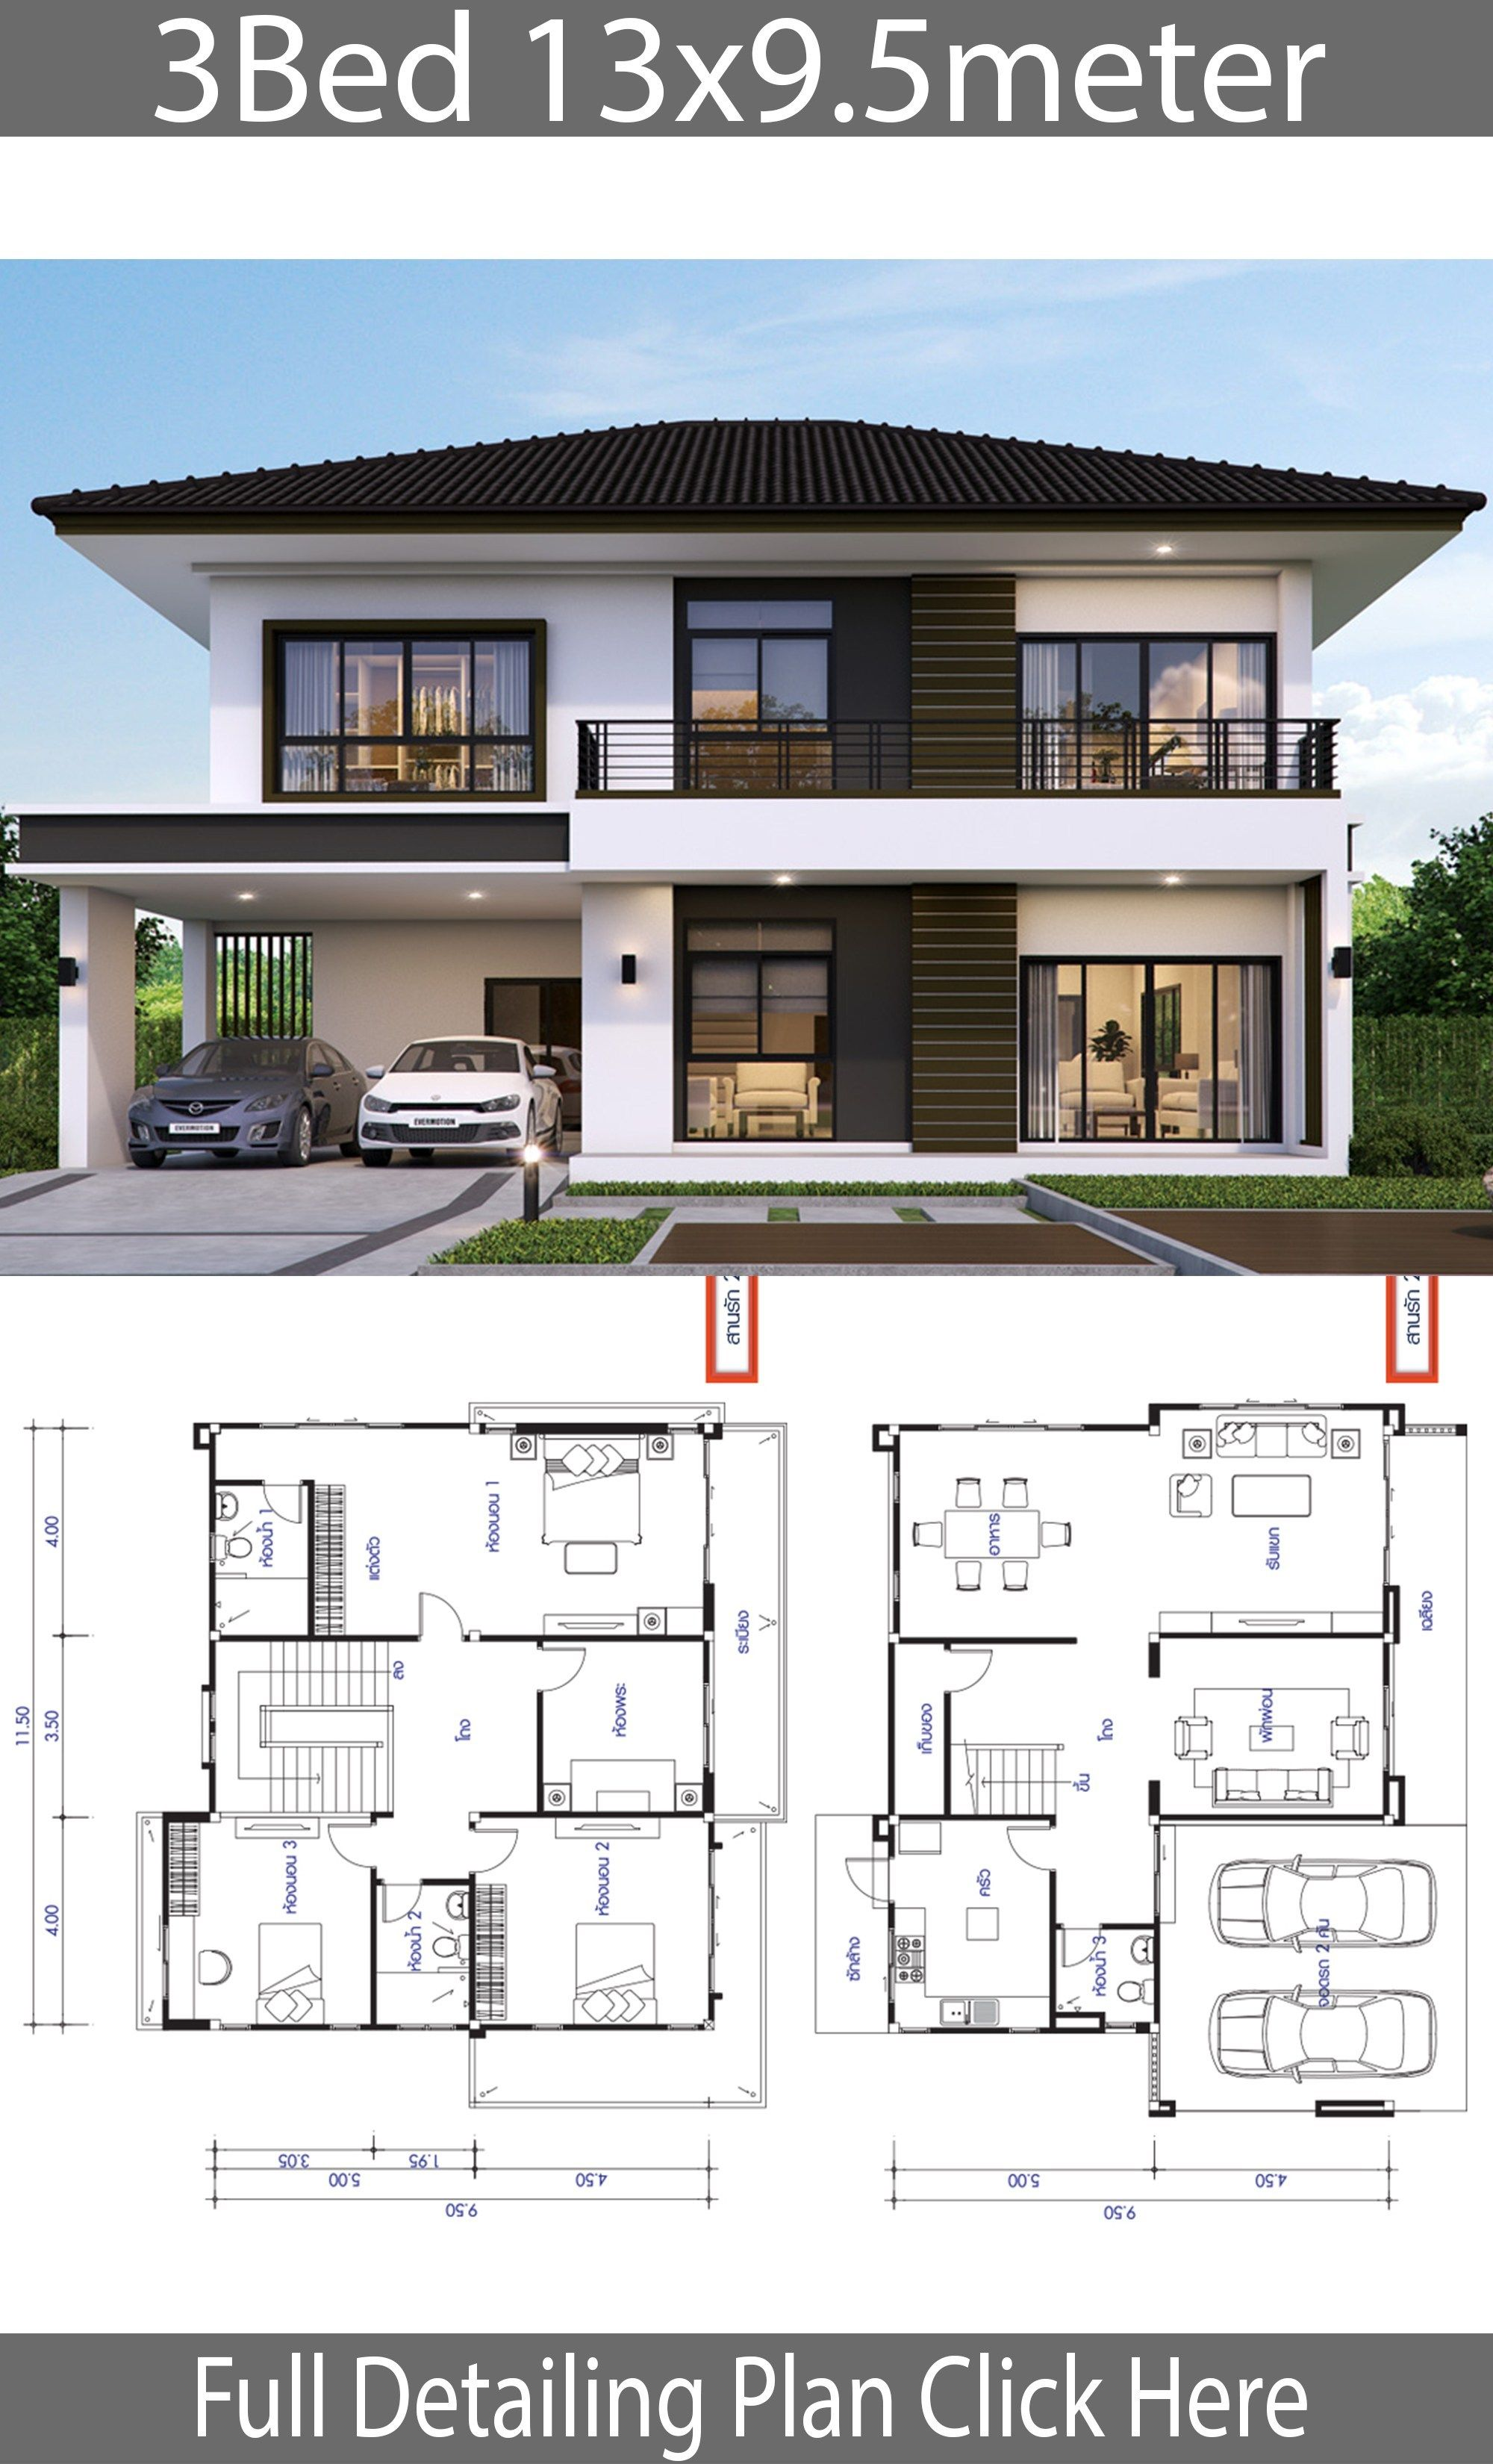 House Design Plan 13x9 5m With 3 Bedrooms Home Design With Plan House Designs Exterior Modern House Design Architectural House Plans